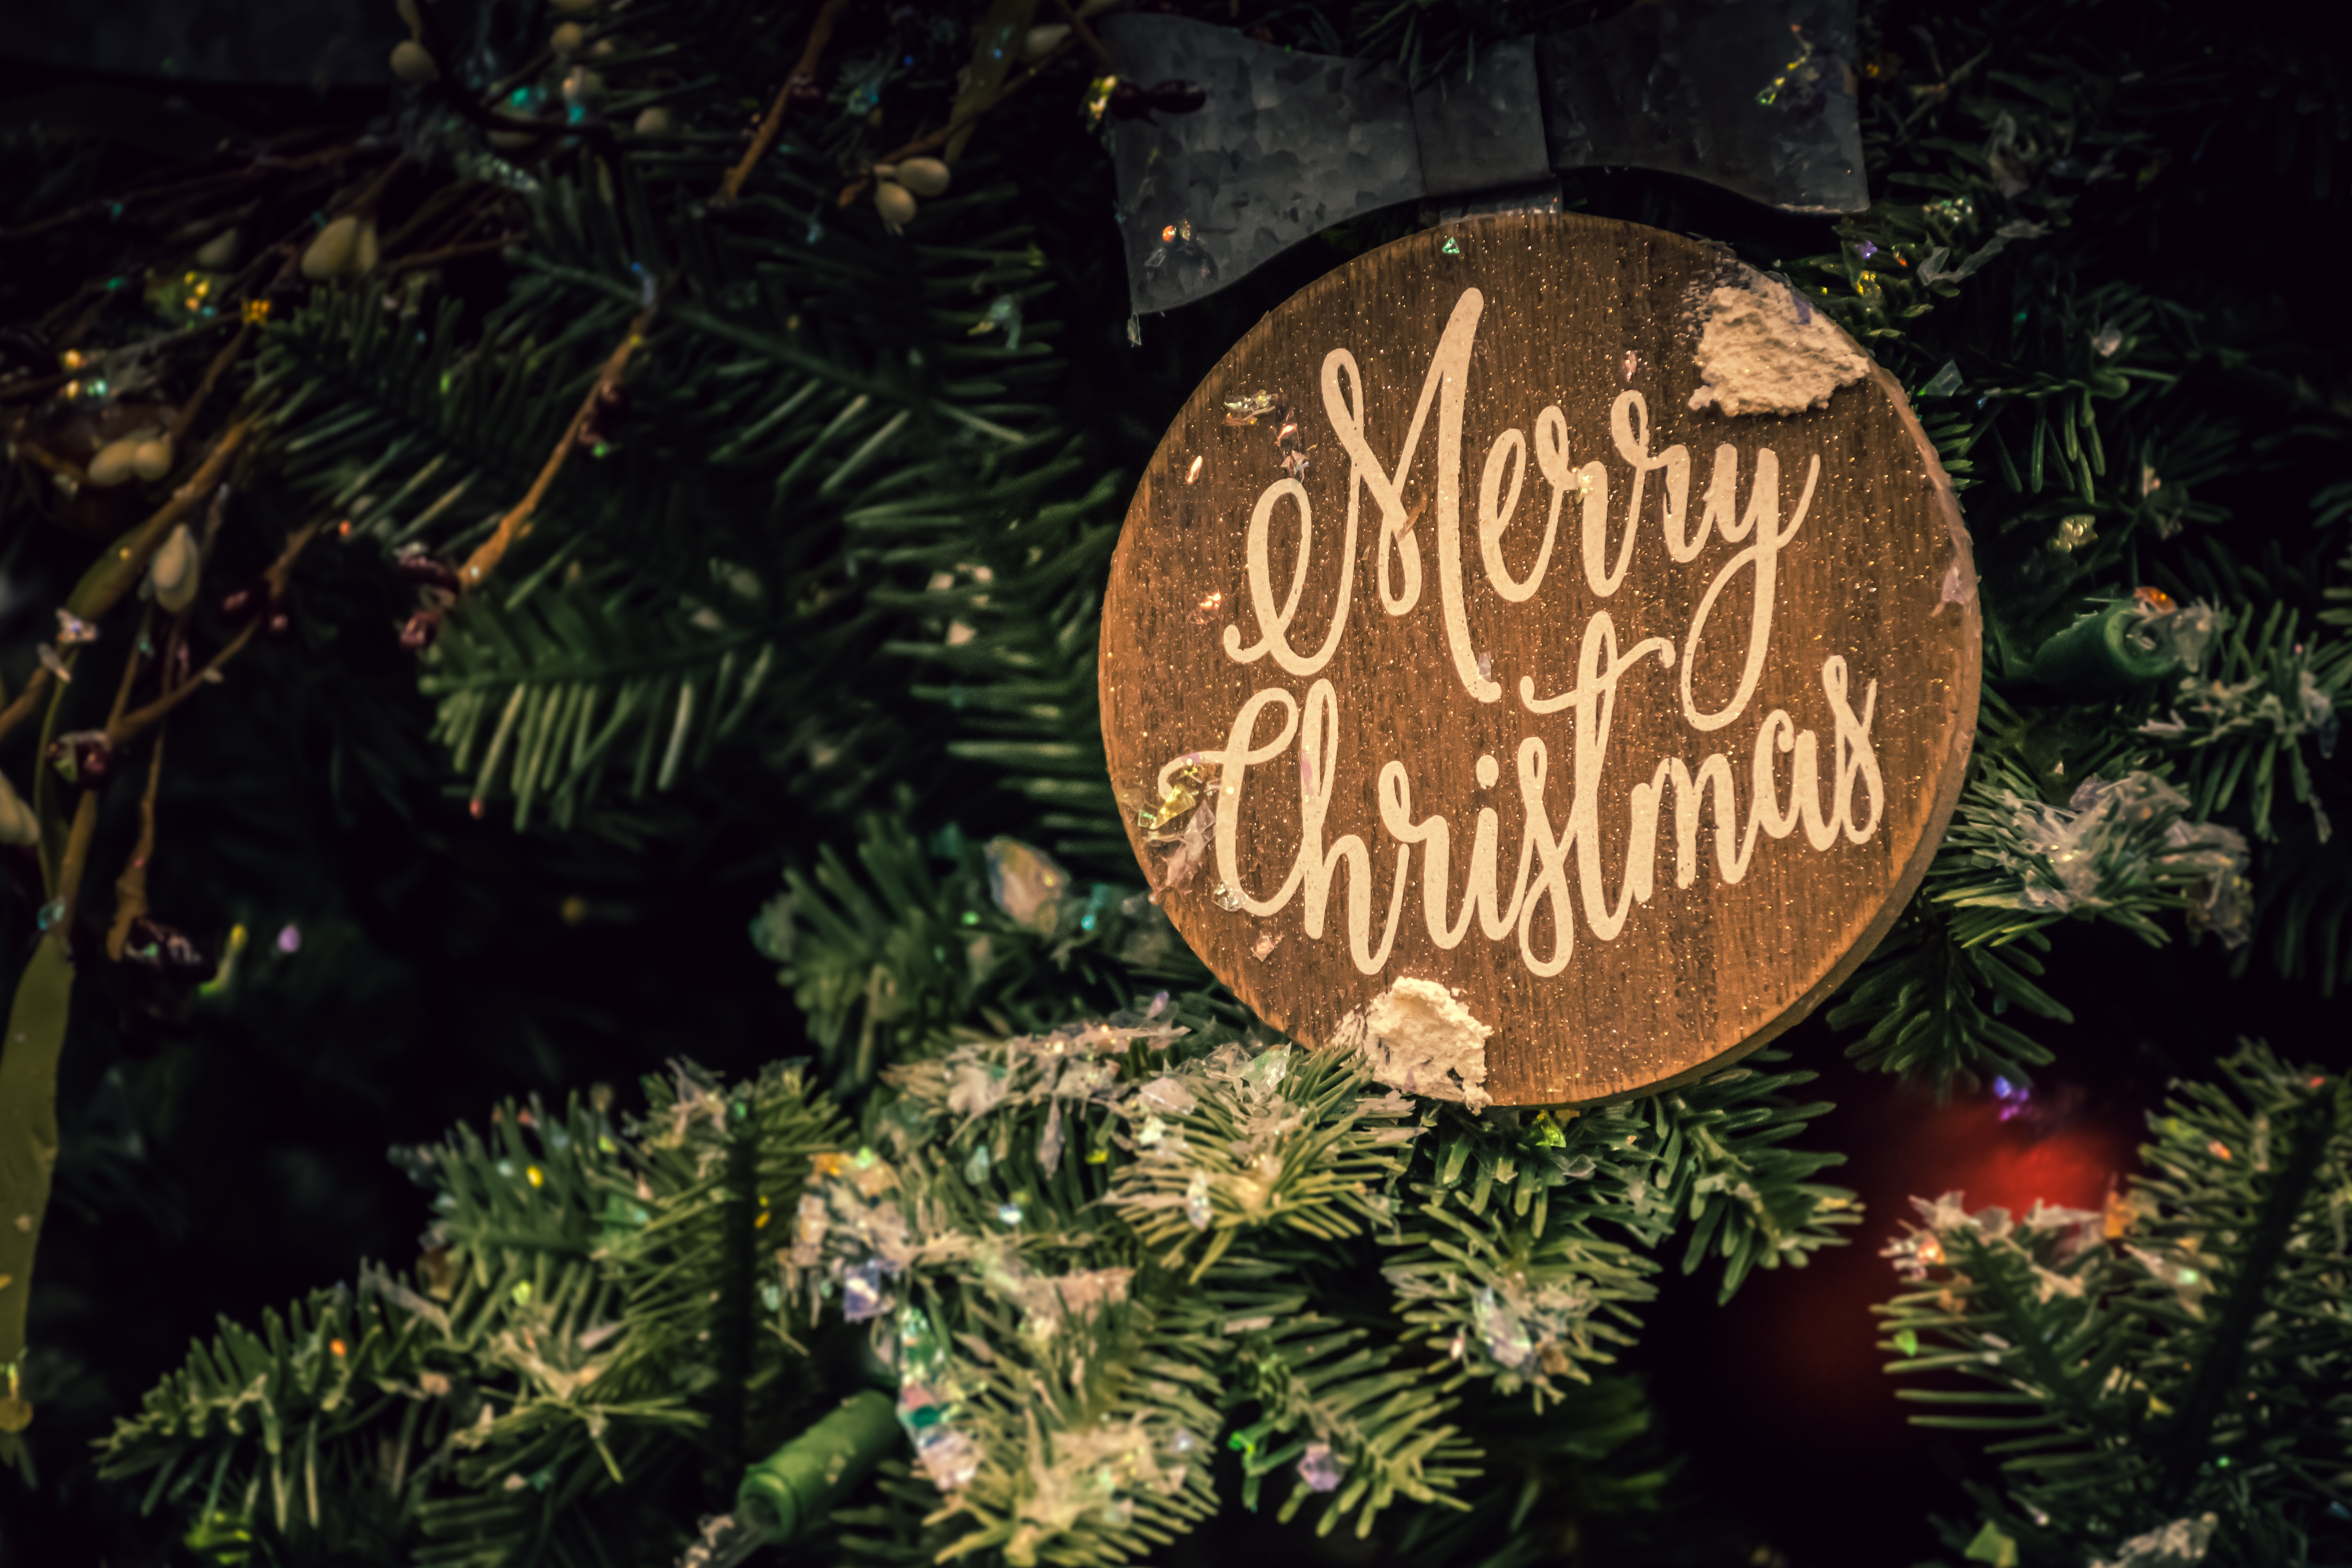 Merry Christmas from the Markland Clinic